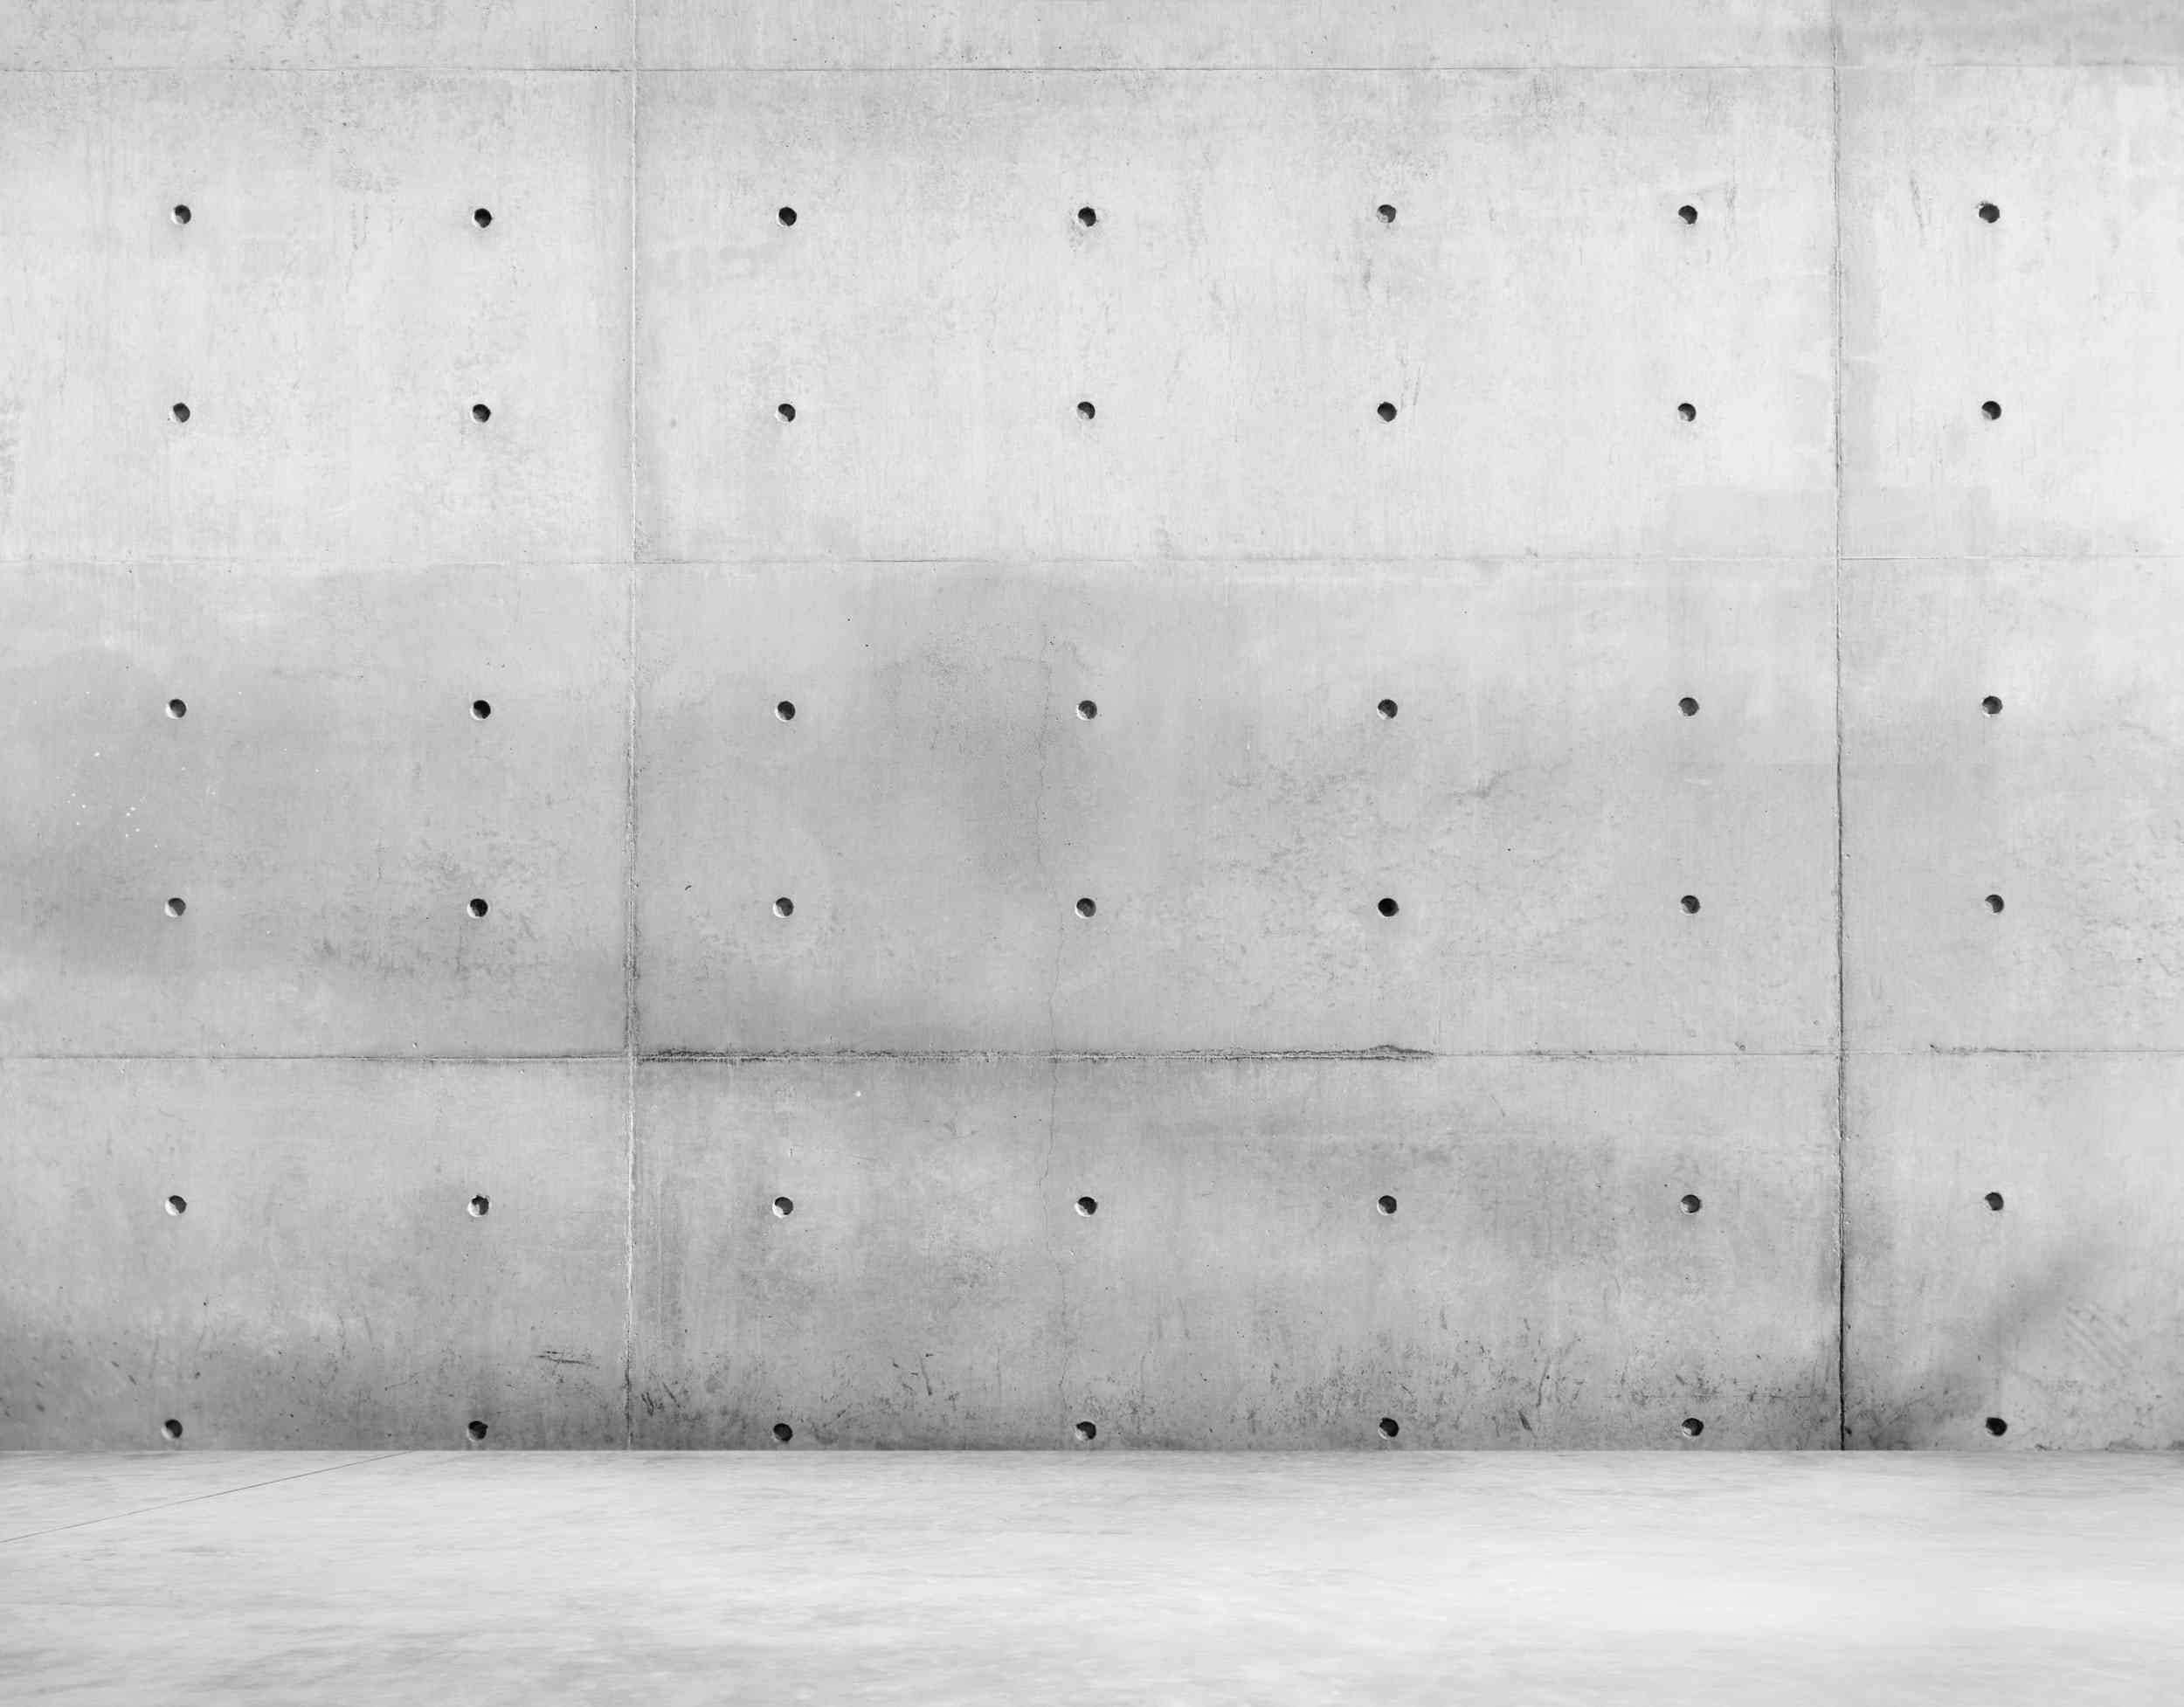 Free Stock s Interior · Pexels for White Wall Texture High